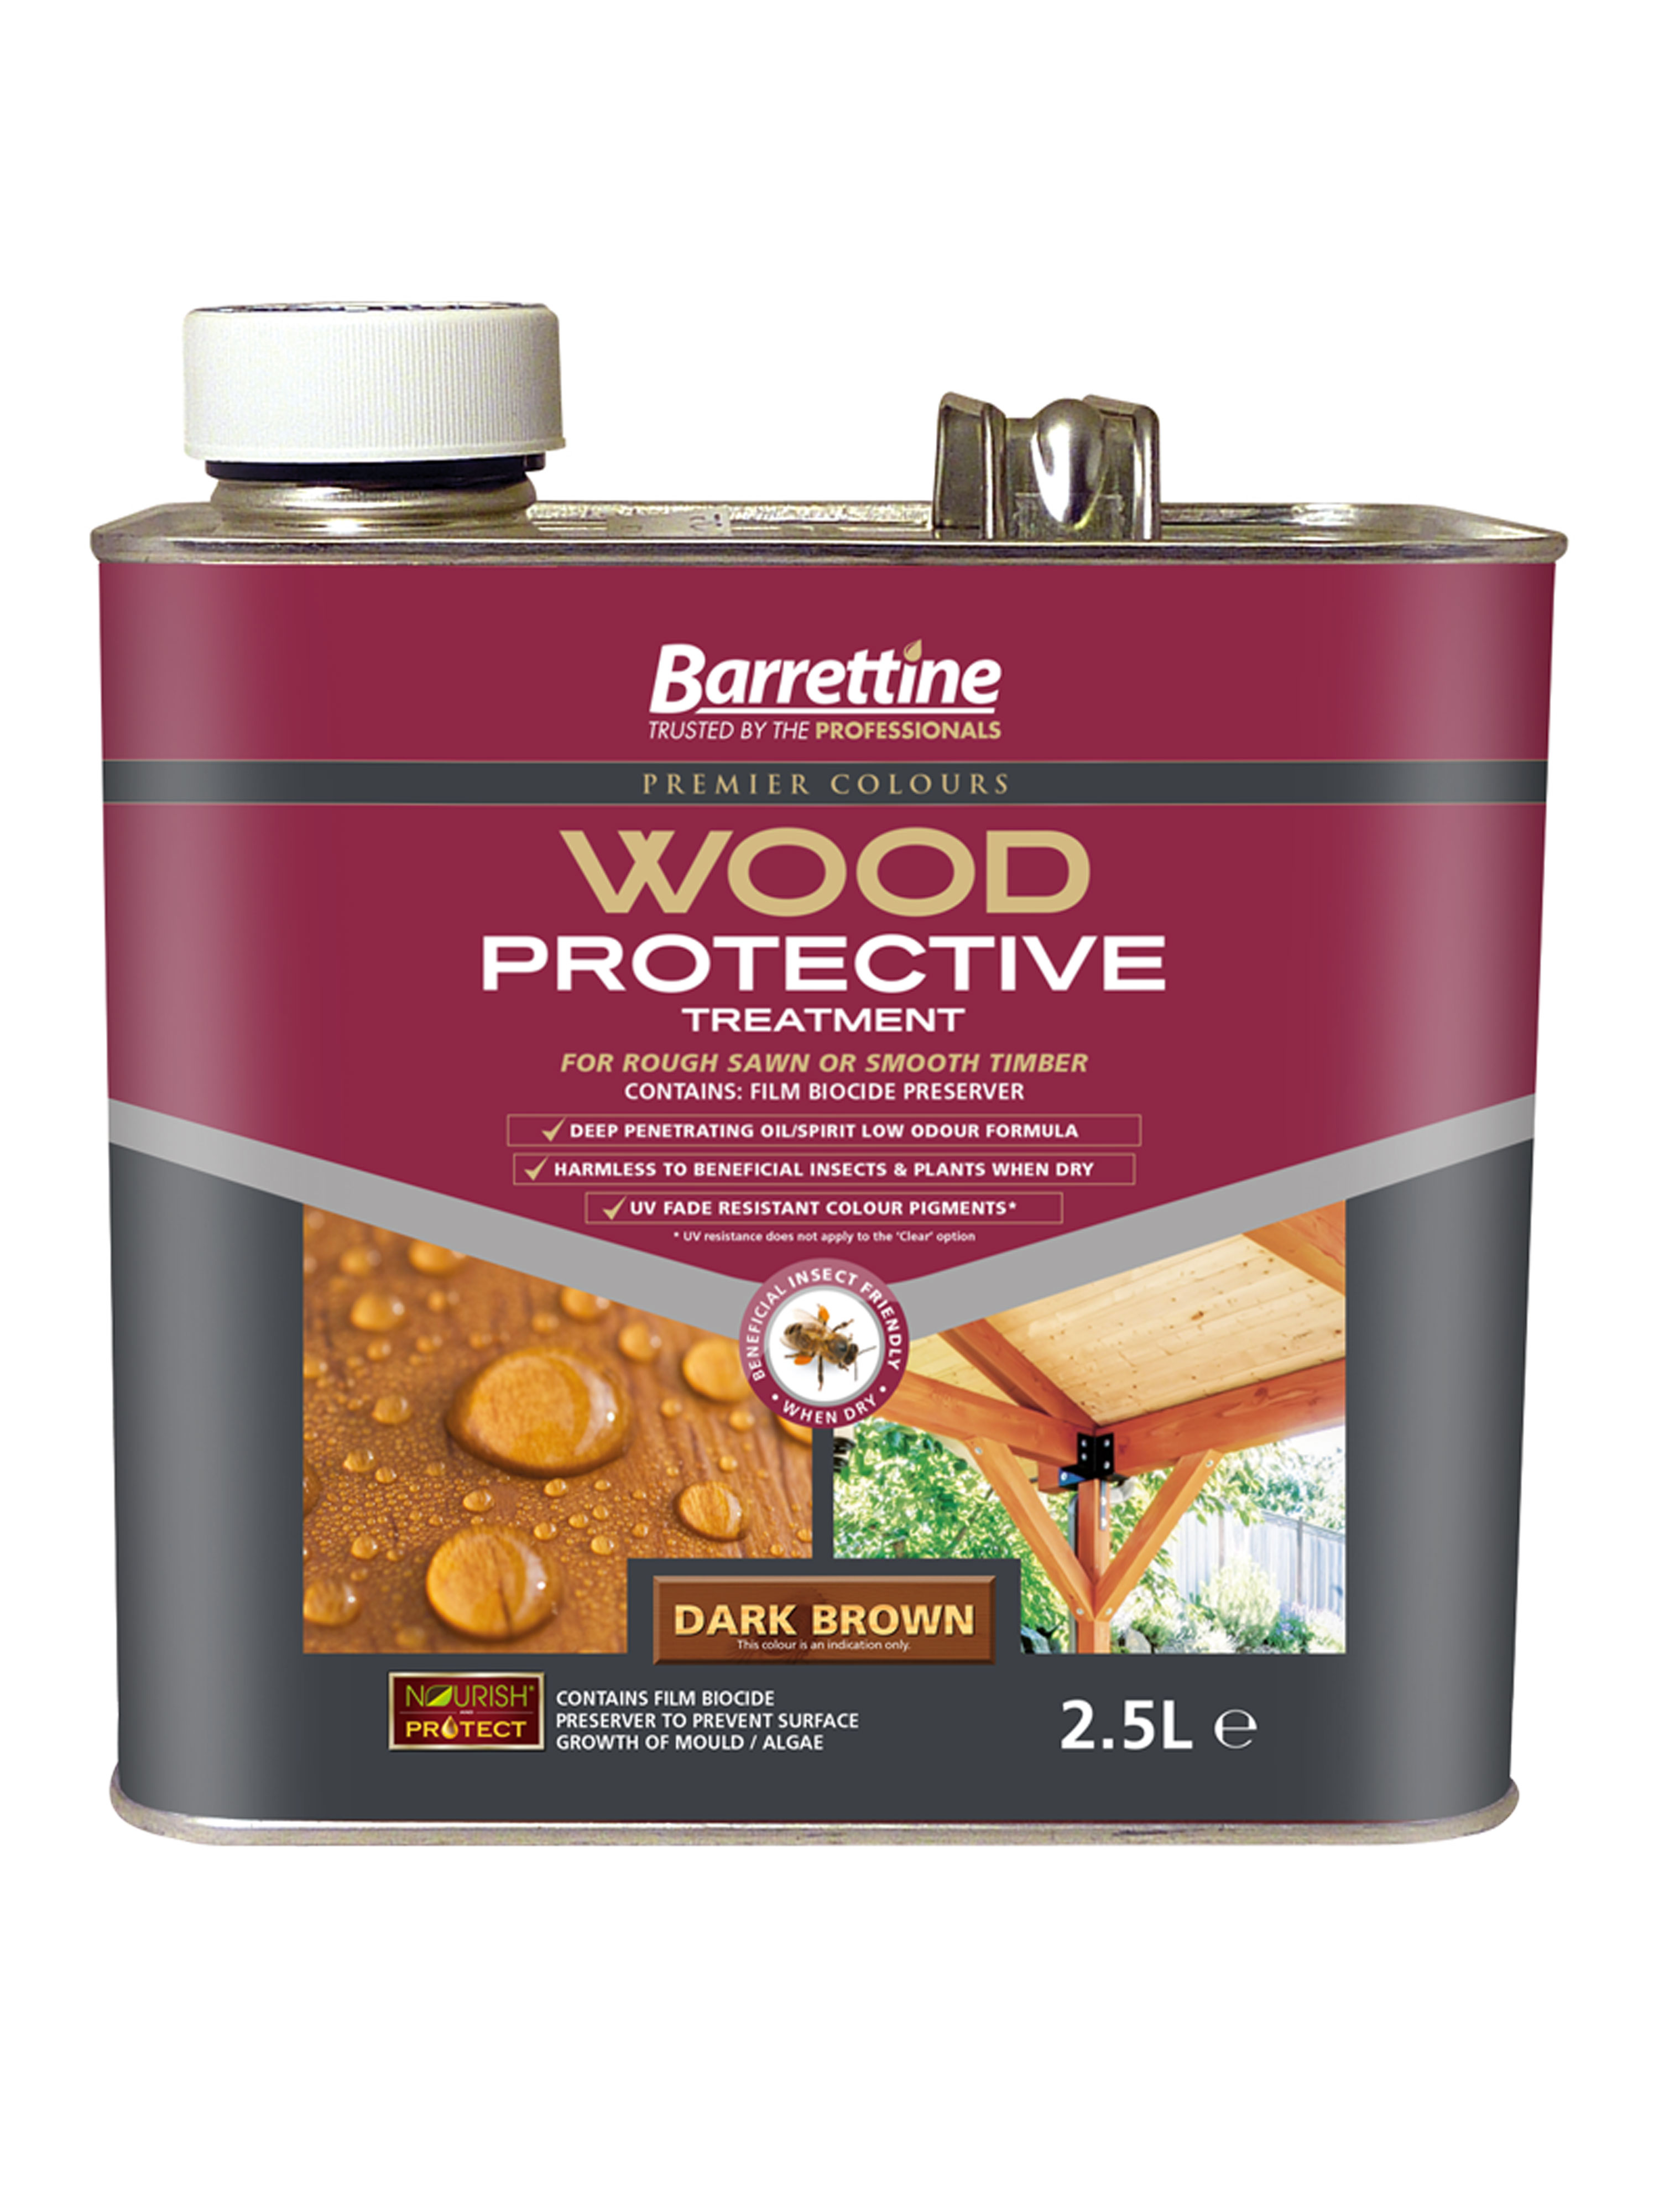 Wood Protective Treatment: Dark Brown 2.5L